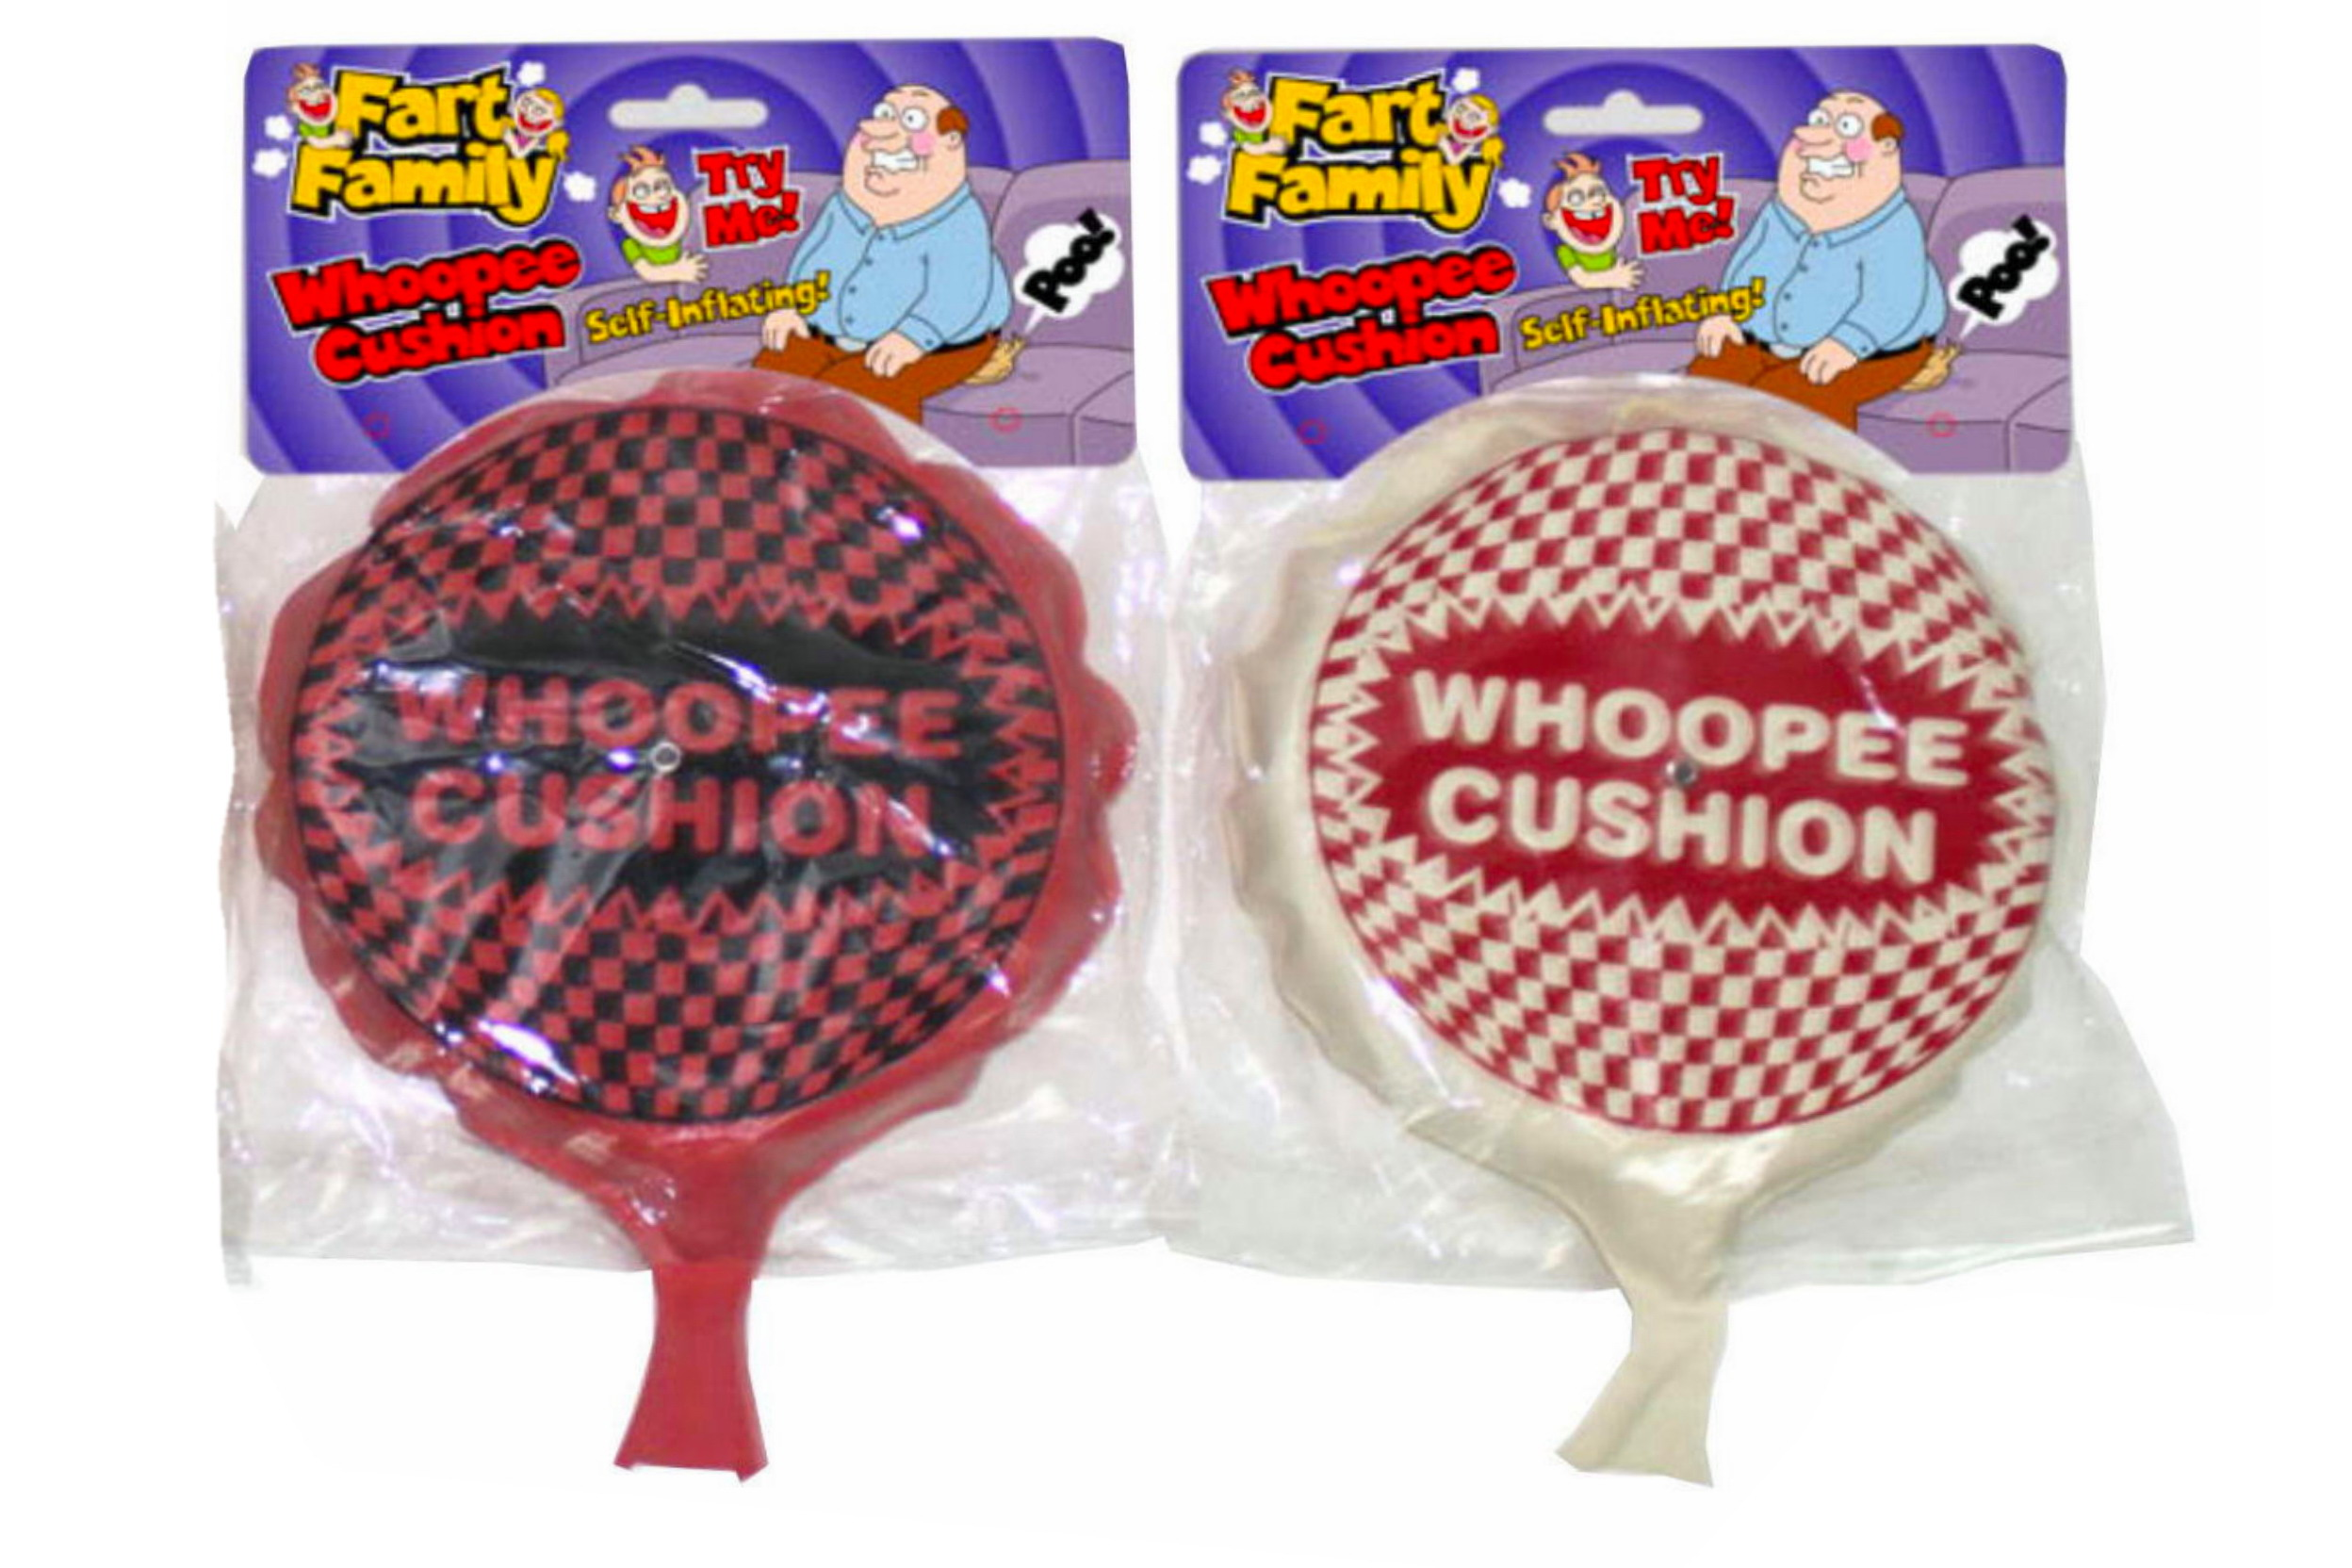 """Self Inflating Whoopee Cushion """"Fart Family"""""""